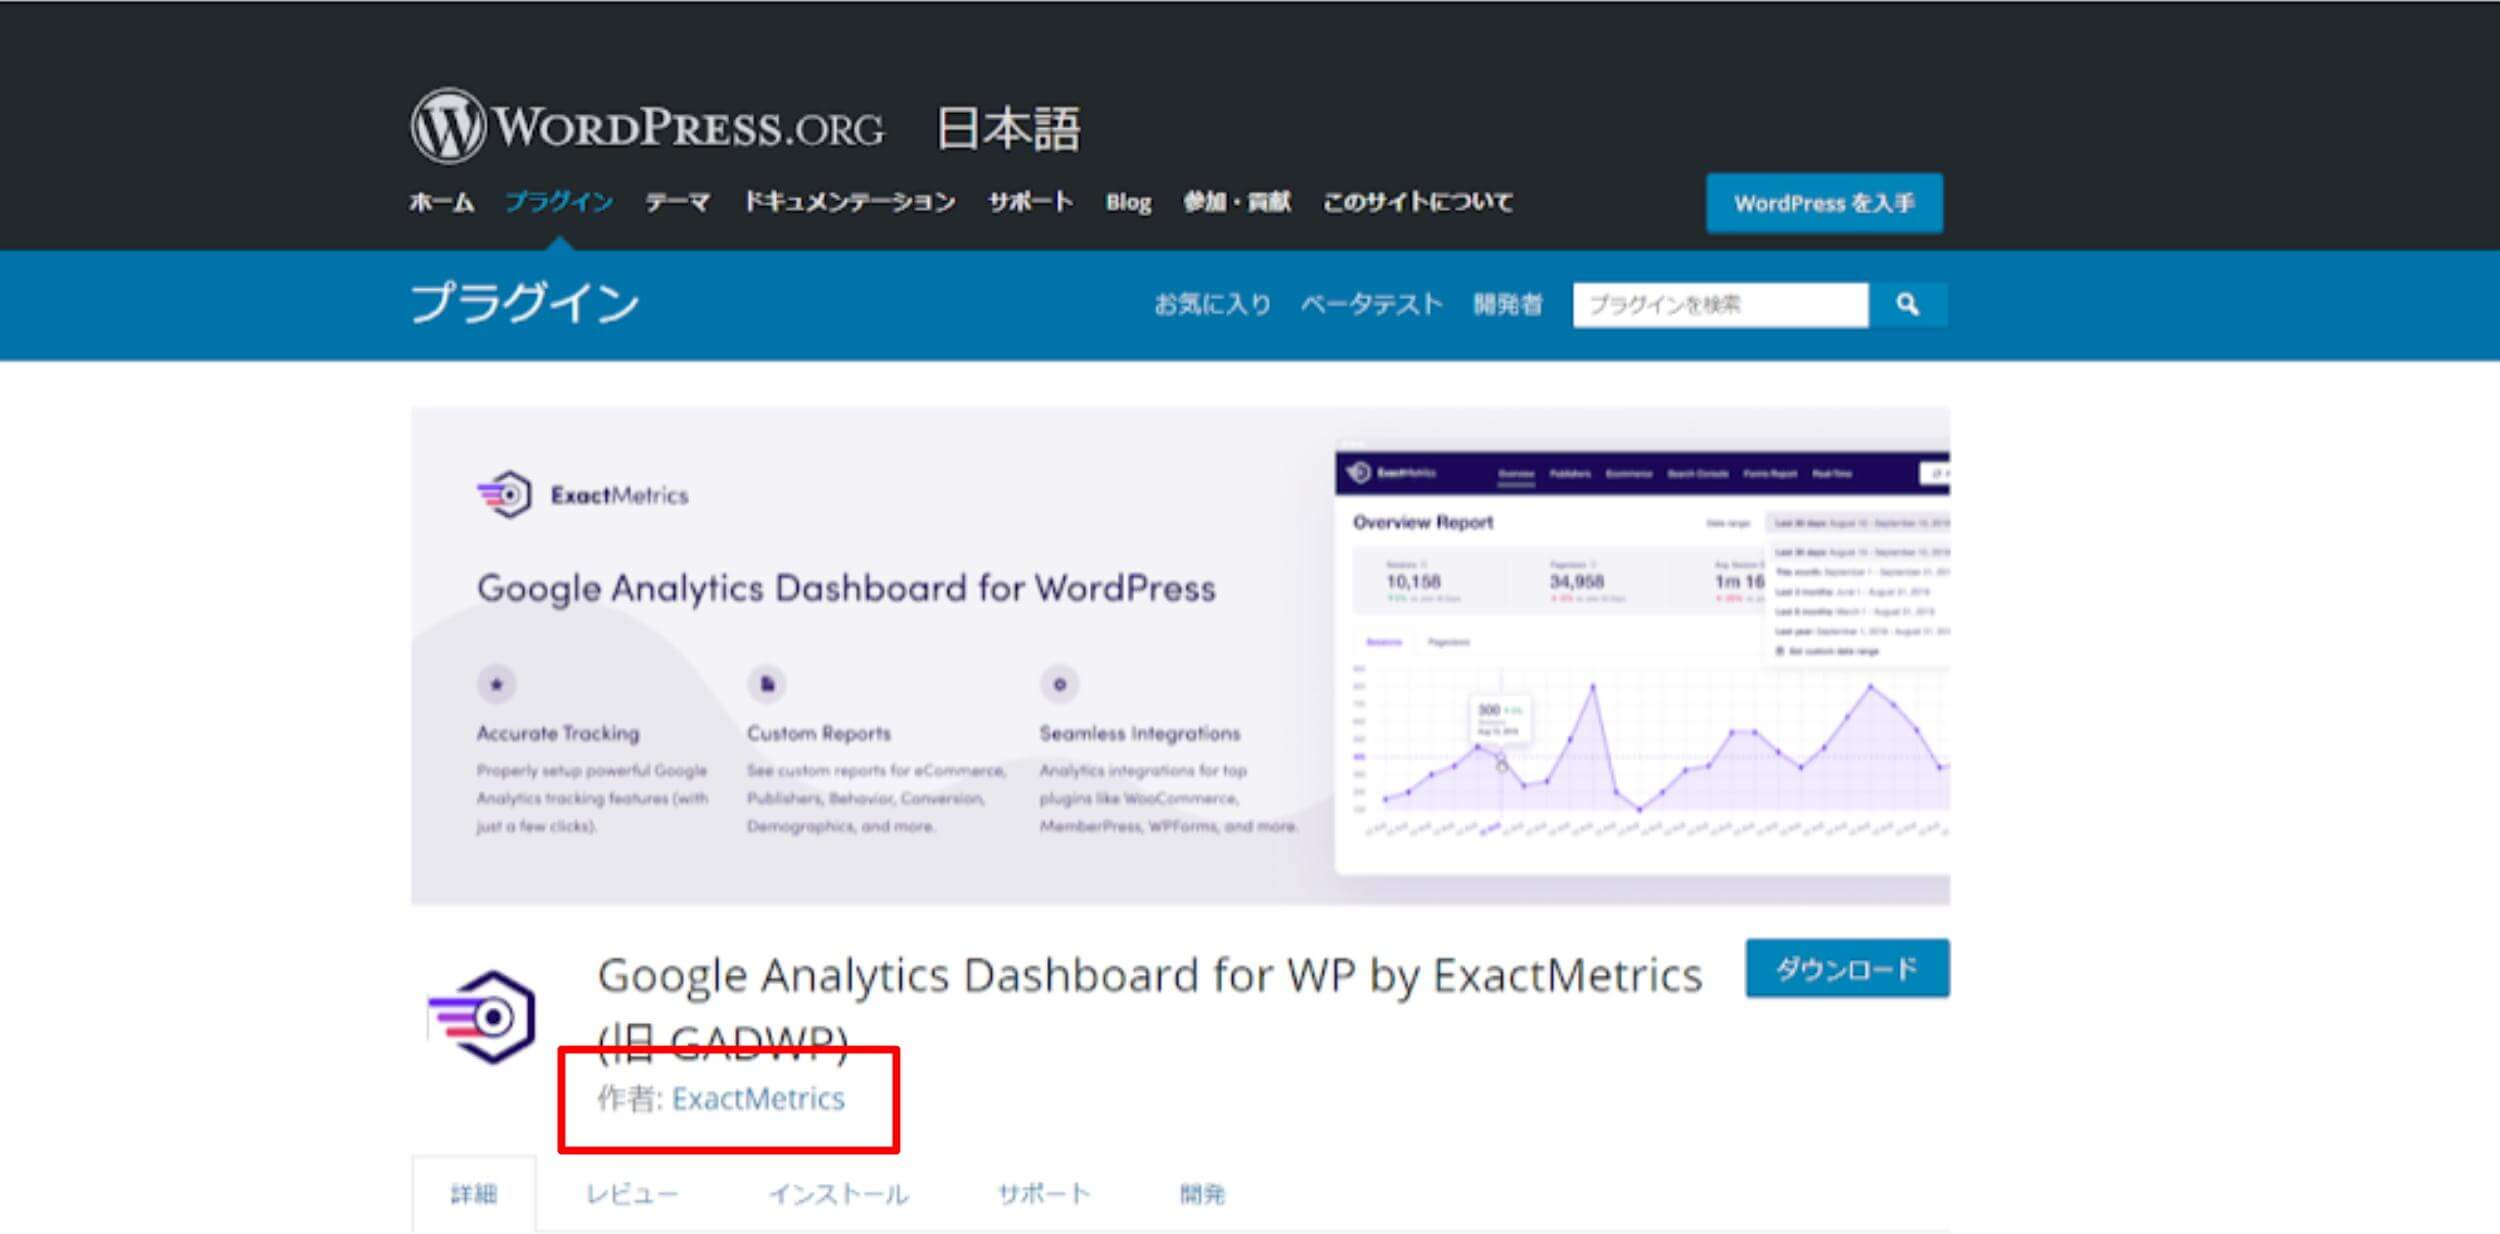 google analytics dashboard for wp by exactmetricsダウンロードページ